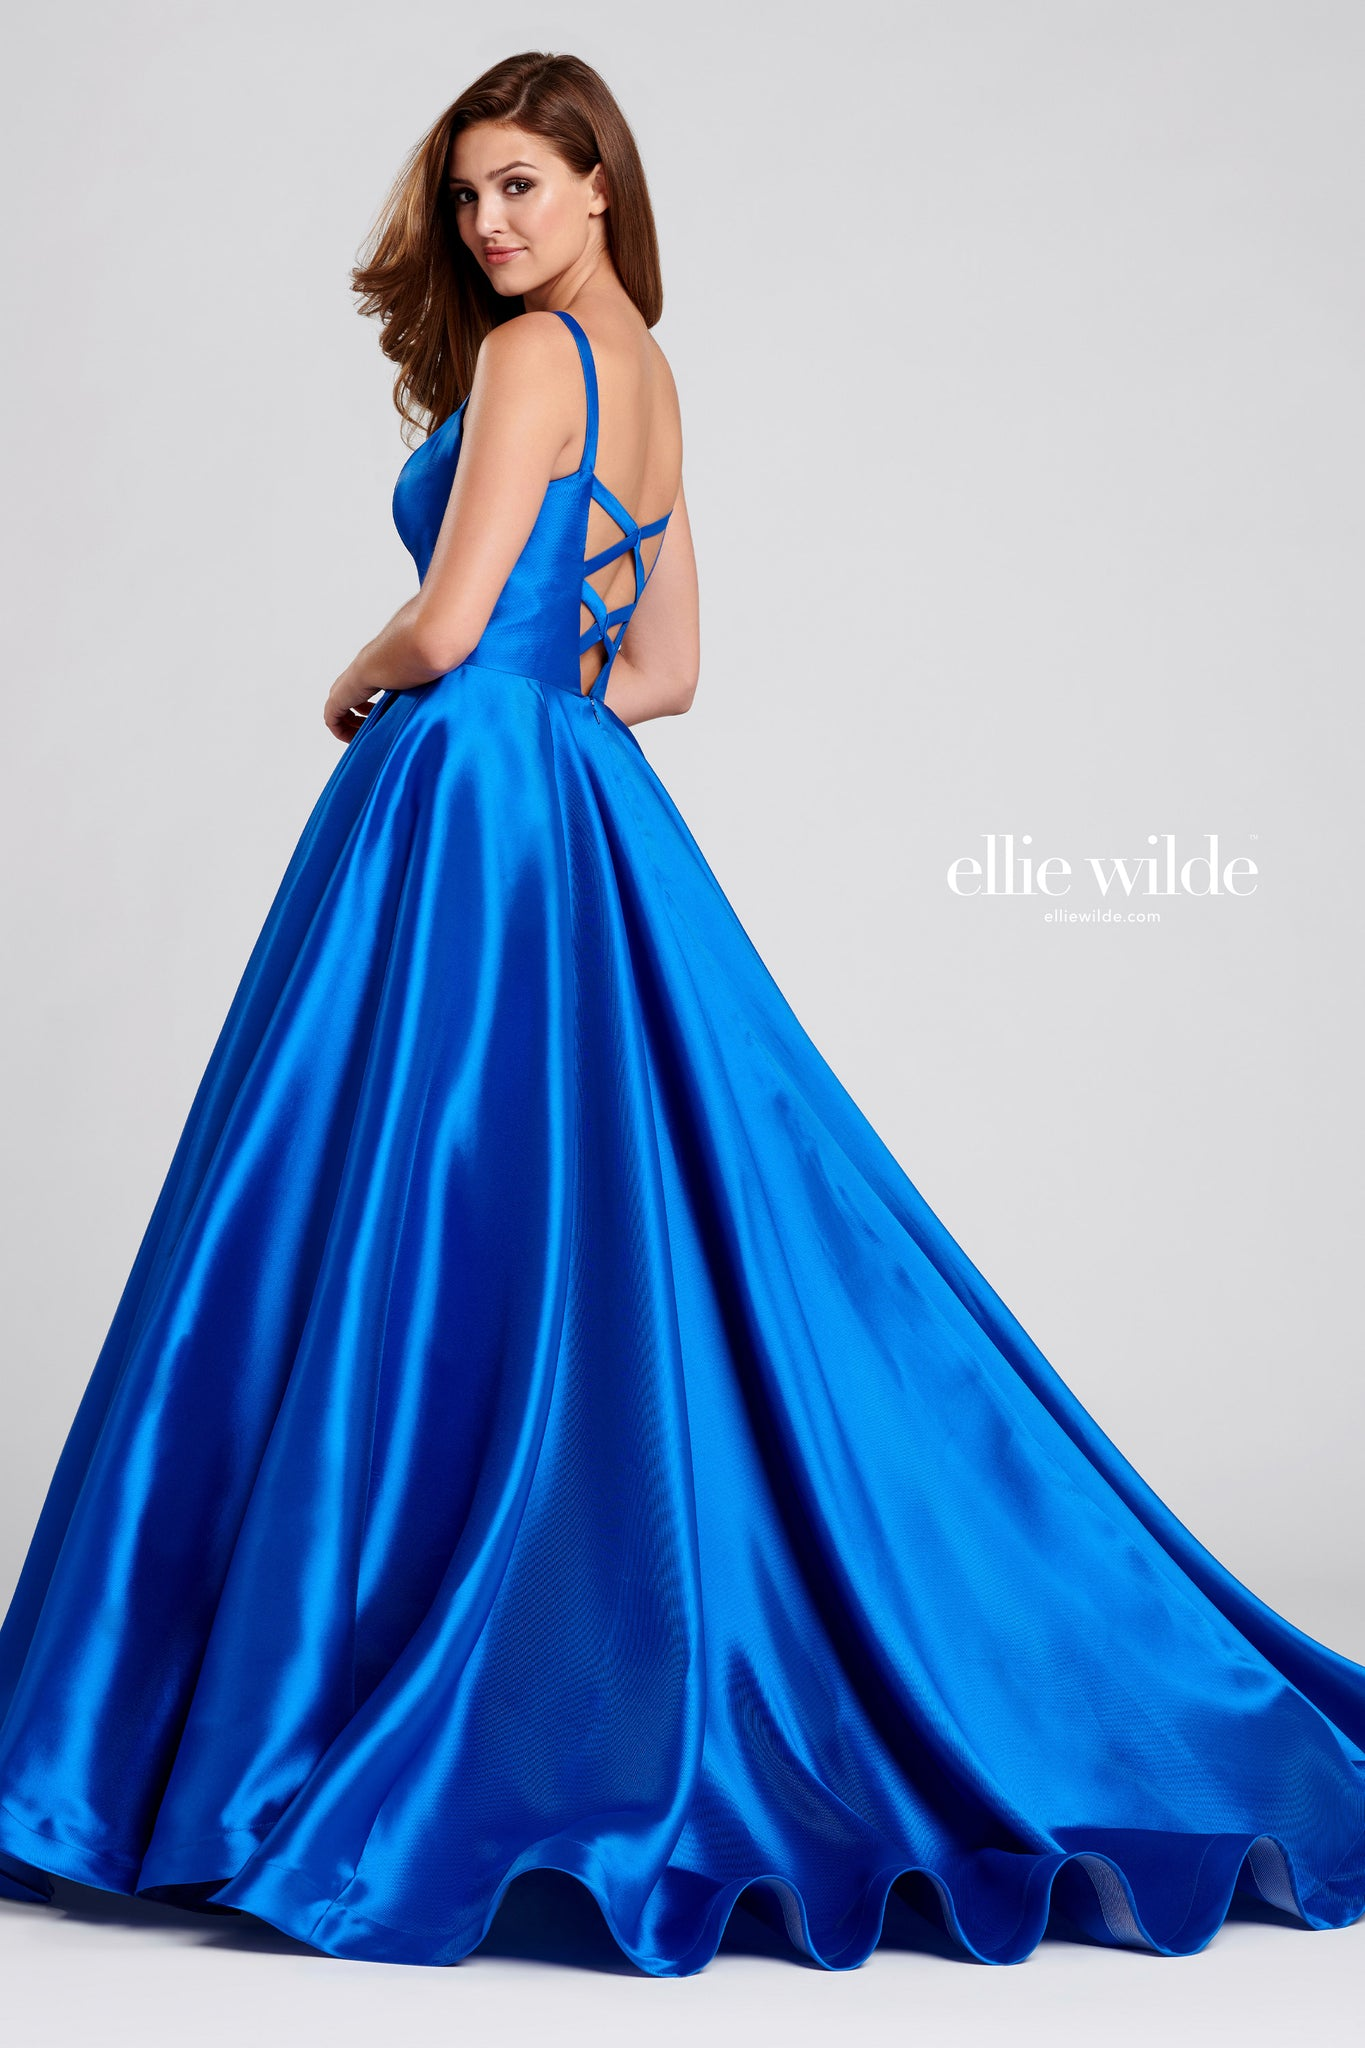 Ellie Wilde Satin Royal Blue Ballgown - Gissings Boutique